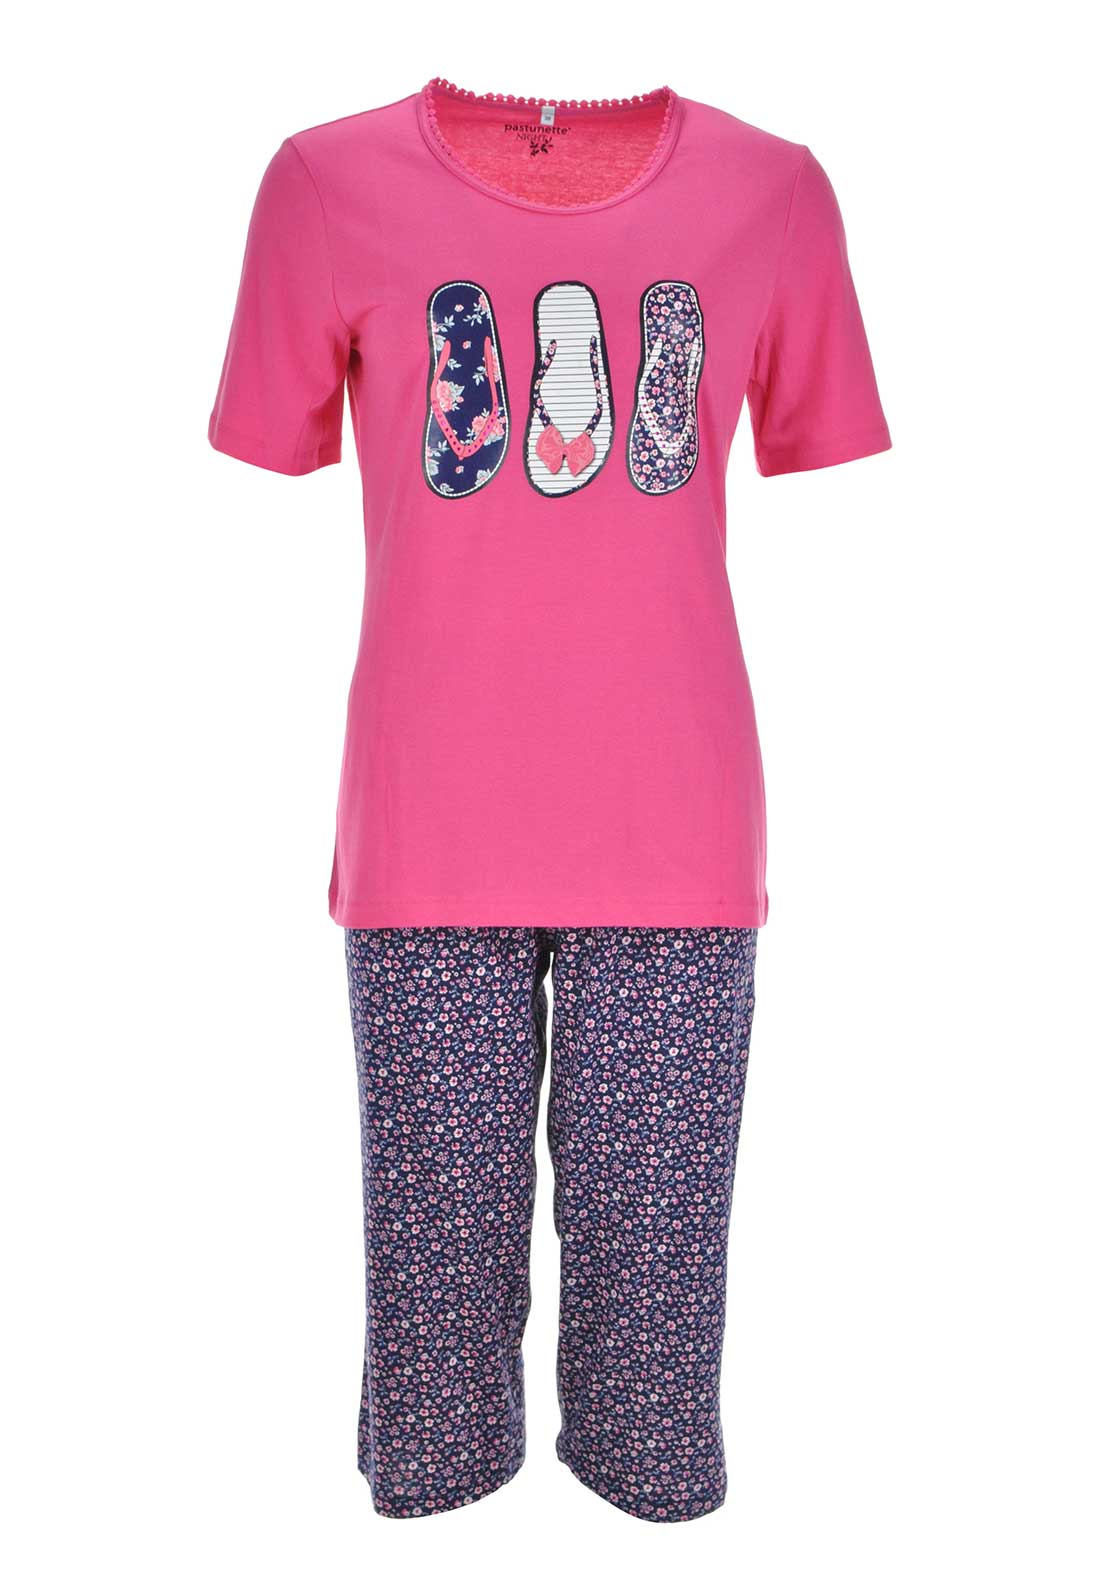 Pastunette Flip Flop Print Pyjama Set, Pink and Navy